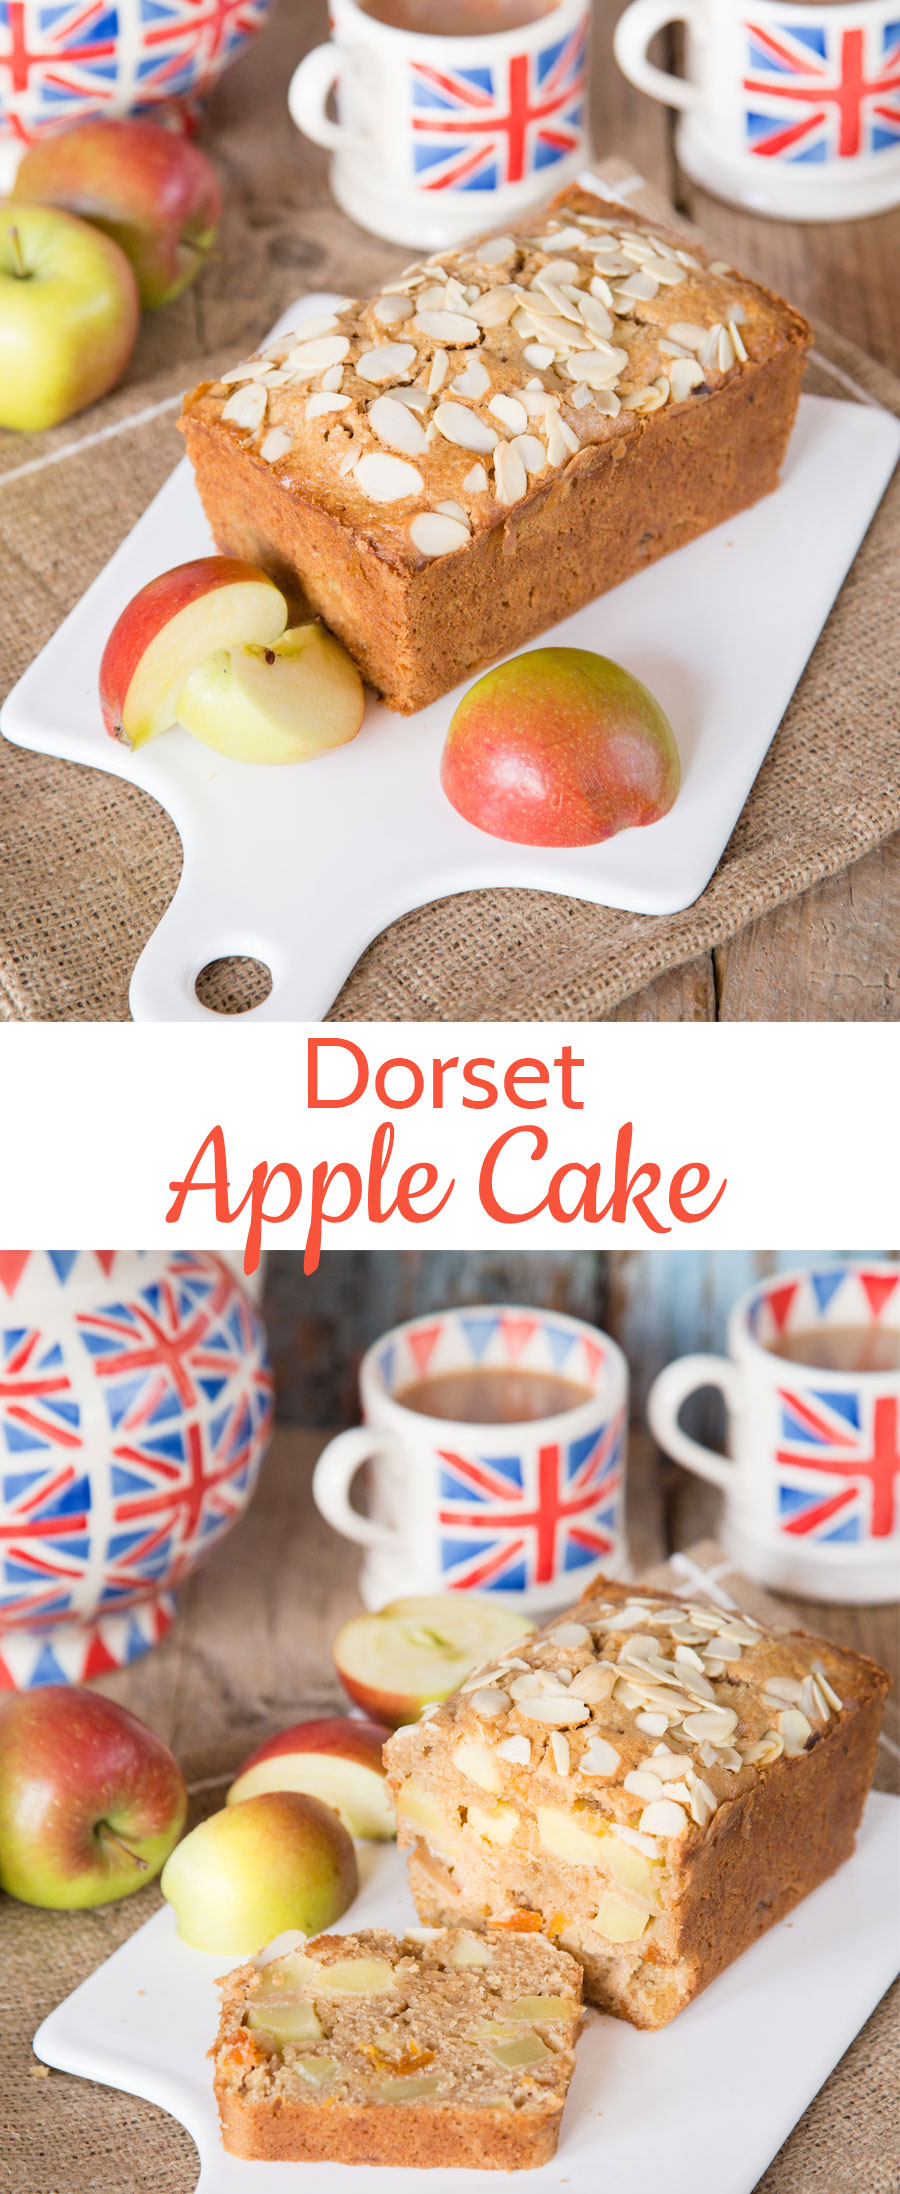 This flavourful Dorset apple cake is simple to make, delicious, and beautifully moist from chunks of apple. Add a dollop of cream for a real treat - British baking at its best!